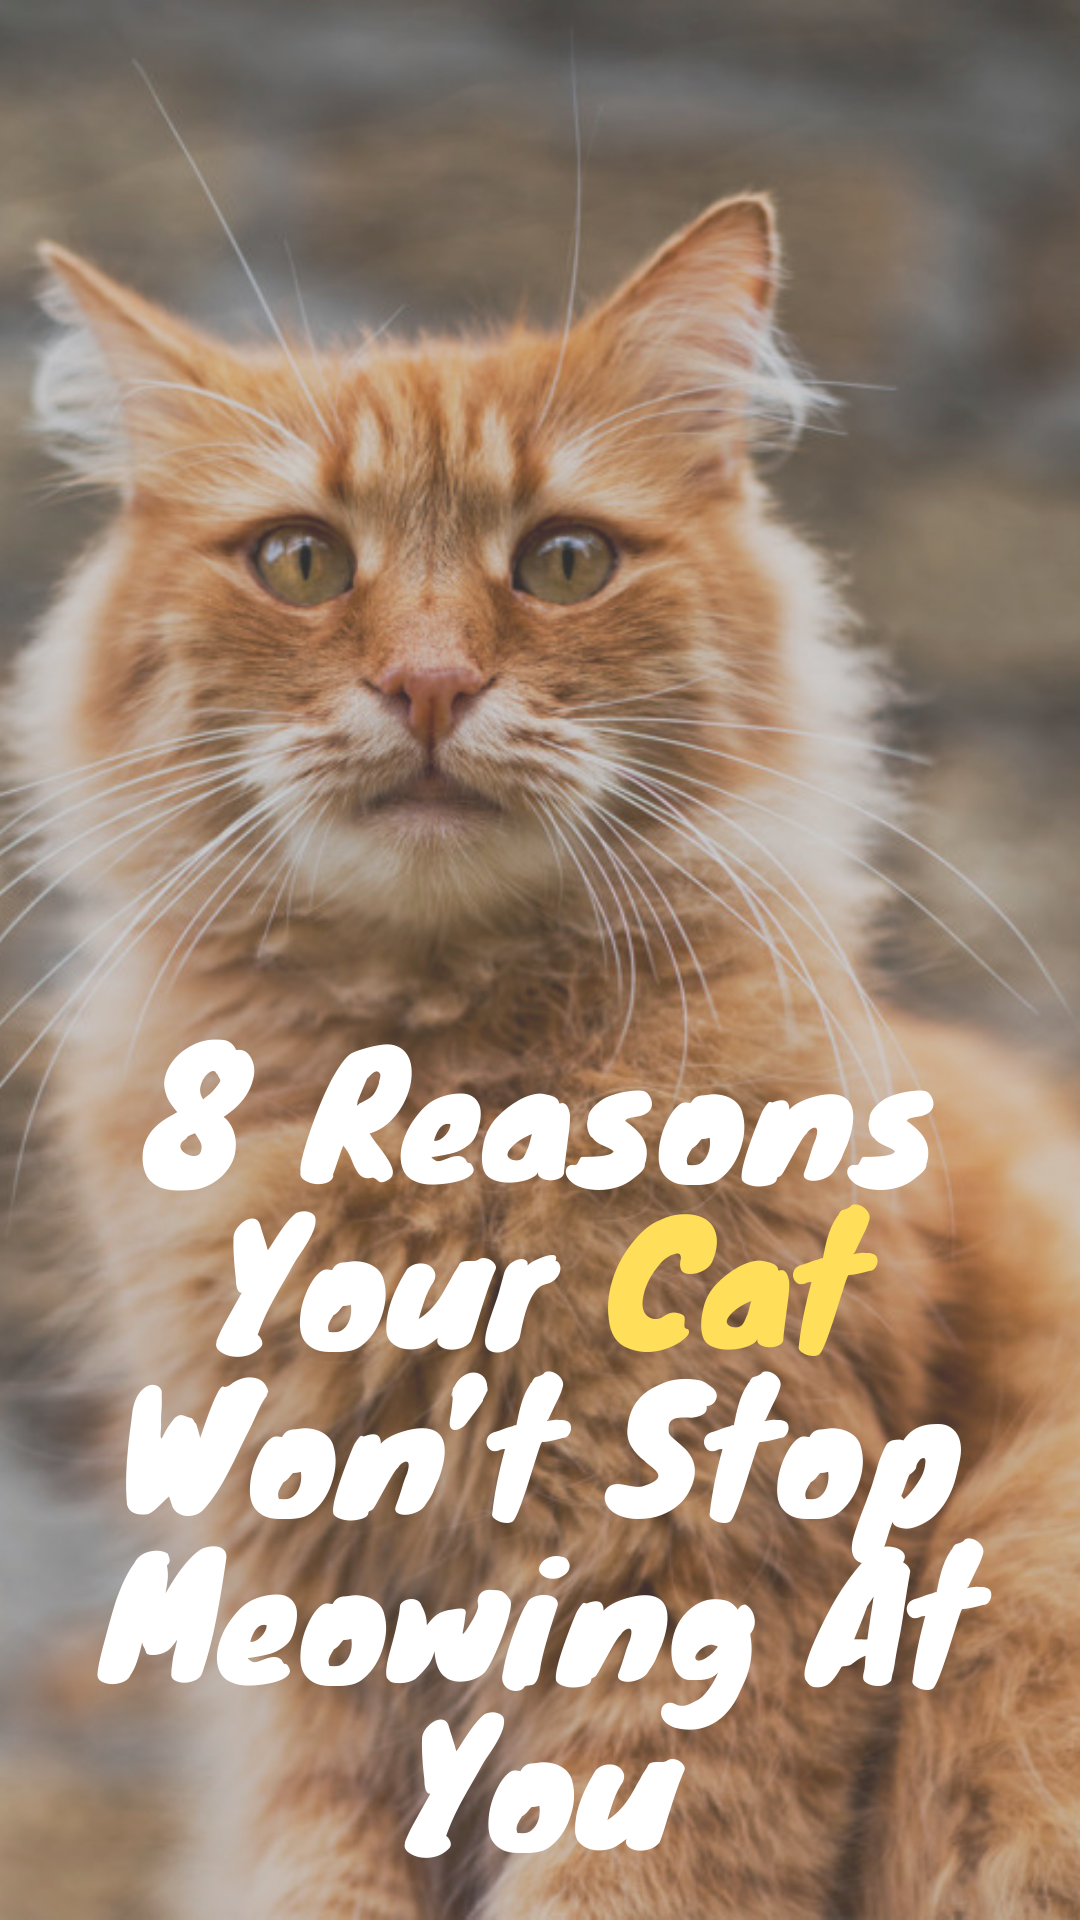 8 Reasons Your Cat Won't Stop Meowing At You Funny cats